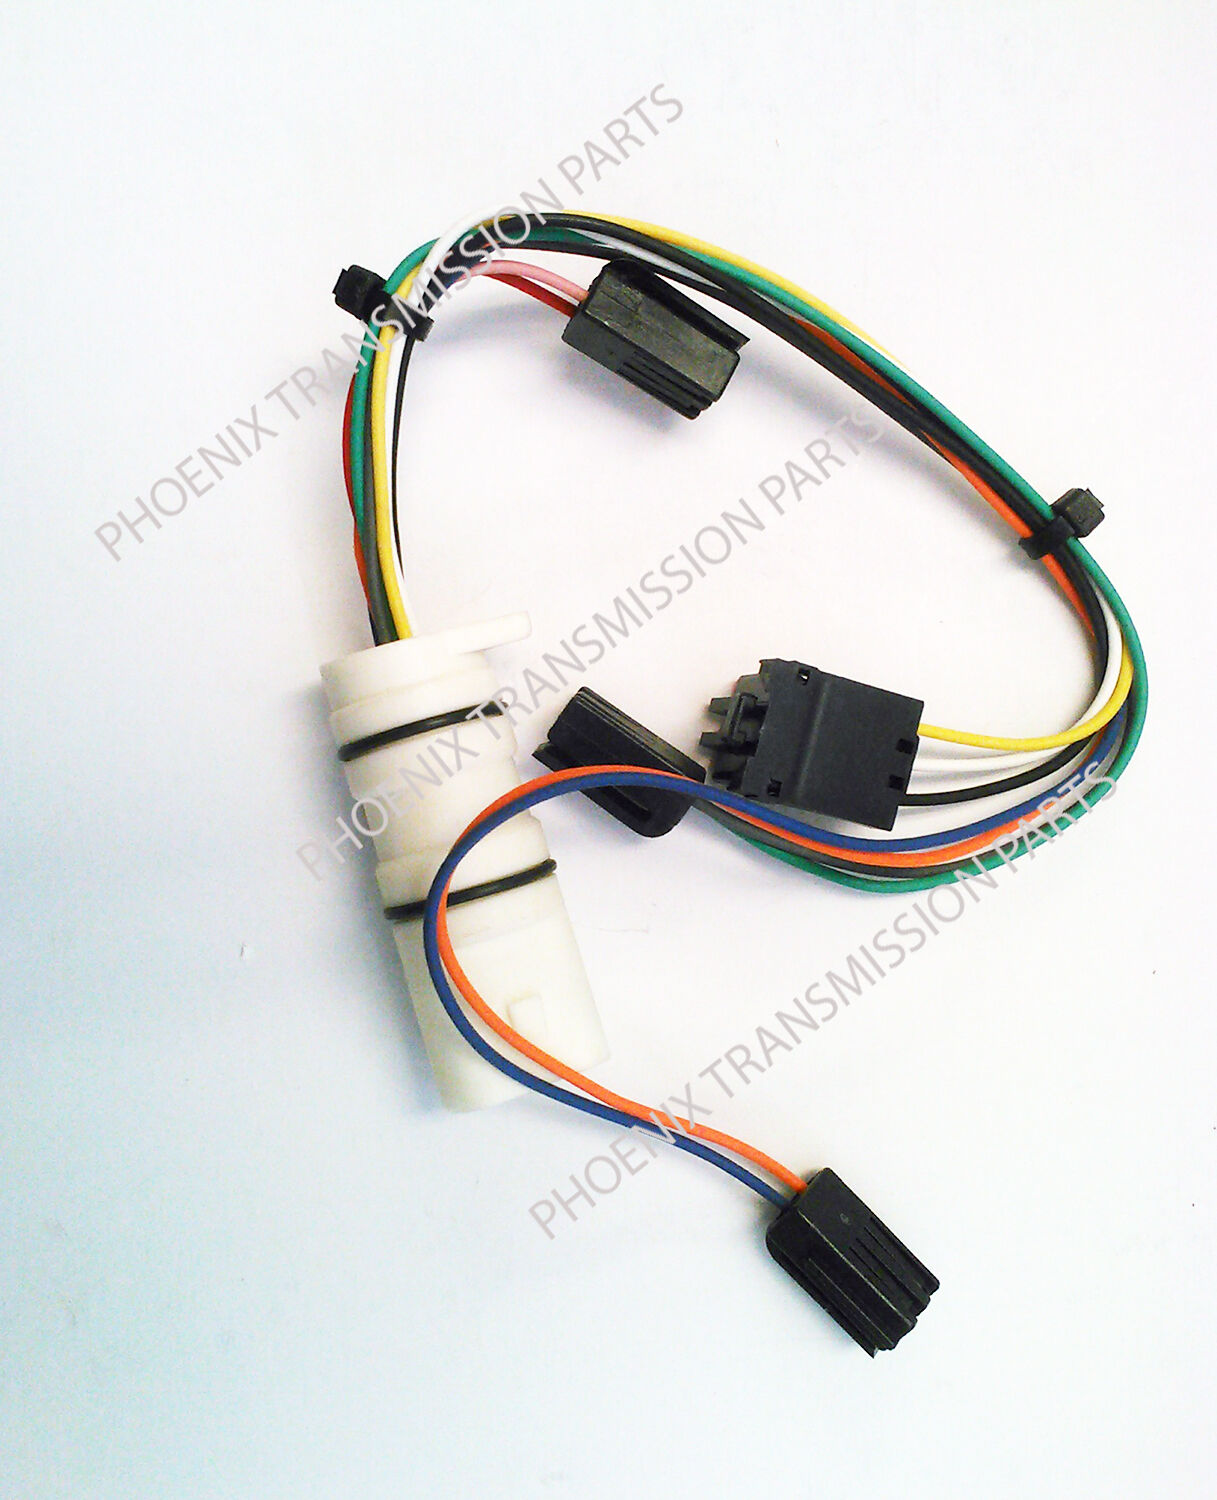 hight resolution of aode 4r70w transmission wire harness 9 pin case connector 1992 97 oe for sale online ebay